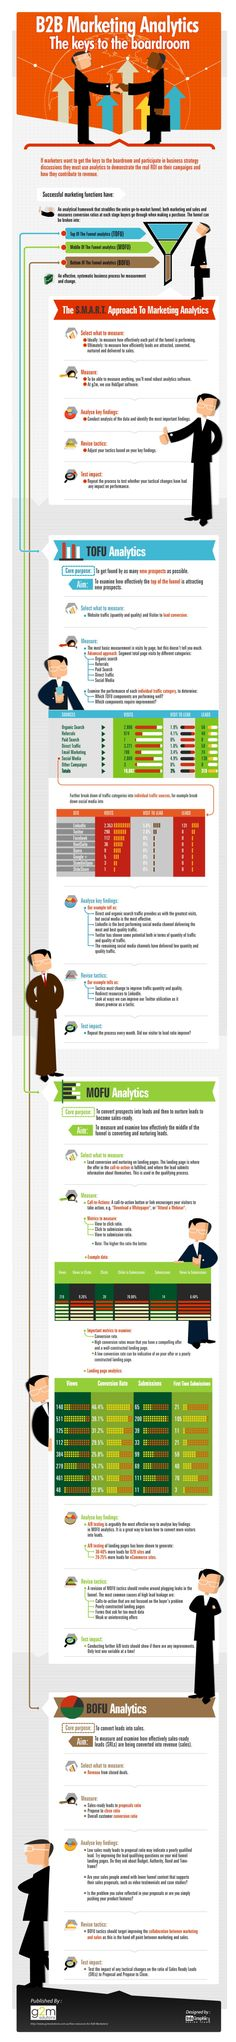 """Infographic that illustrates how Marketers can use to get """"the keys to the boardroom""""! This means improving your chances as someone who understands the relationship between marketing investments and revenue. B2b Social Media Marketing, Inbound Marketing, Marketing Digital, Marketing And Advertising, Business Marketing, Content Marketing, Internet Marketing, Marketing News, Social Business"""